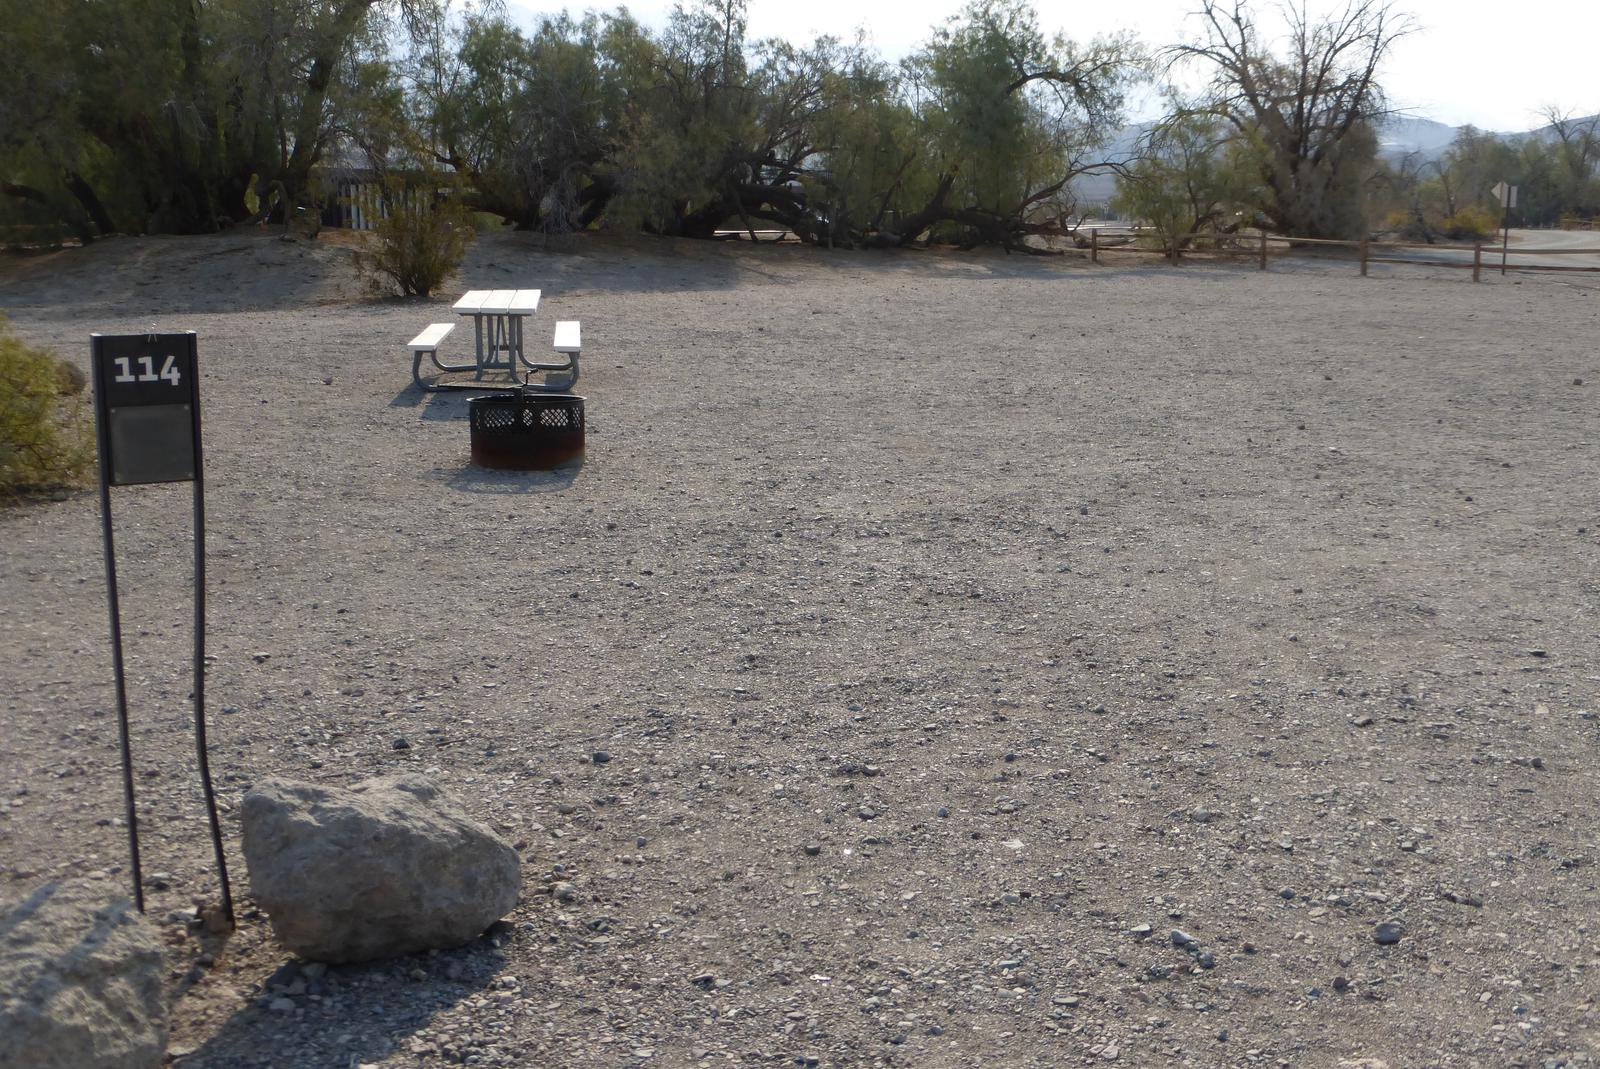 Furnace Creek Campground standard nonelectric site #114 with picnic table and fire ring.